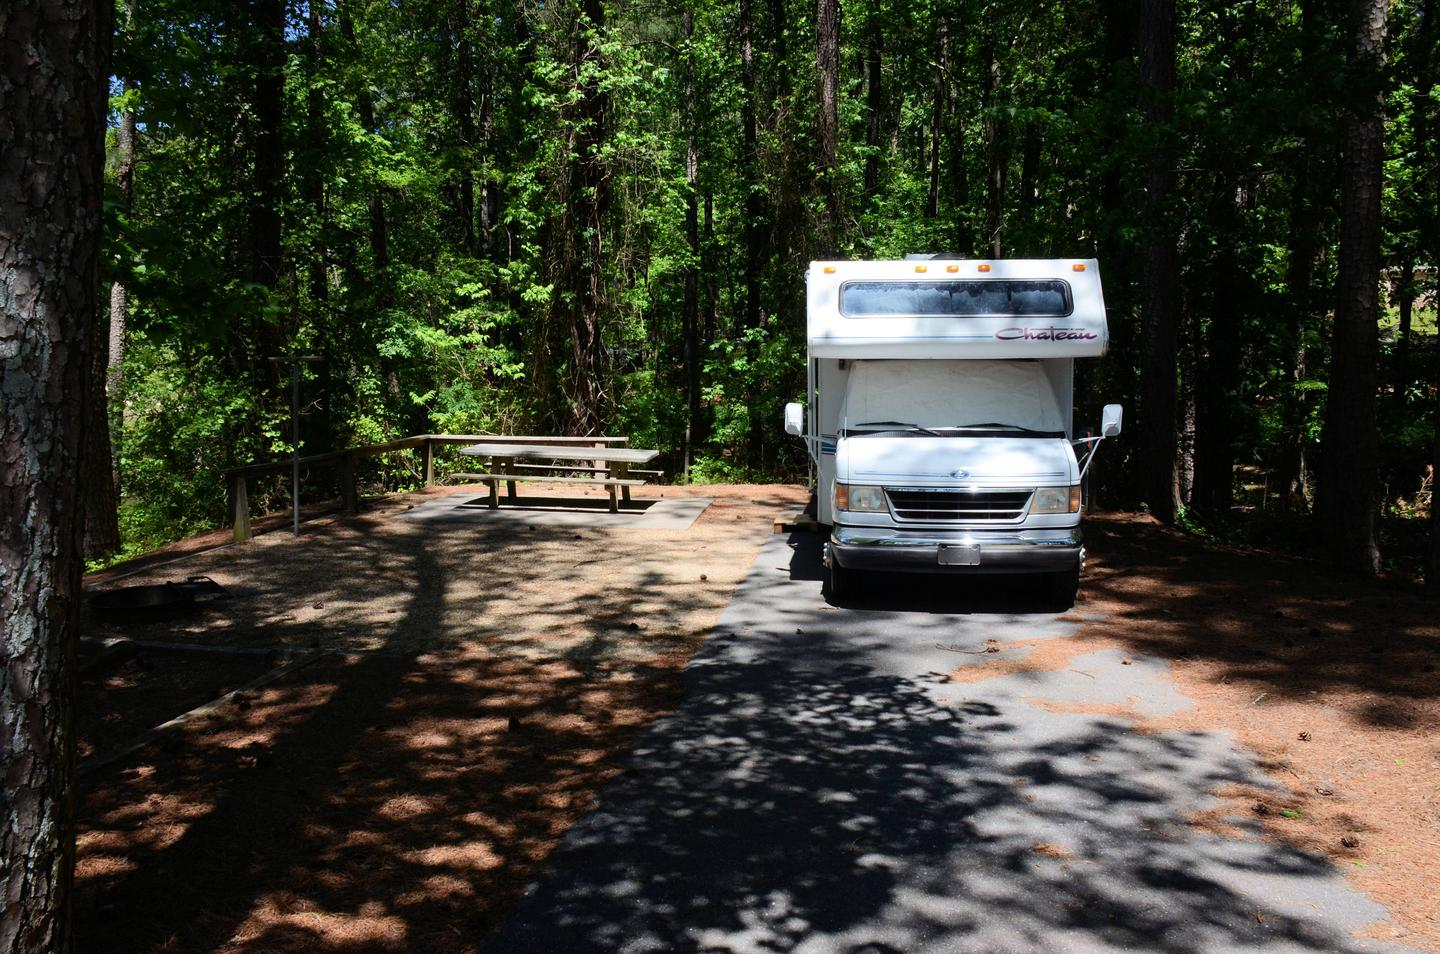 Campsite view, driveway slope, awning-side clearance.McKinney Campground, campsite 121.